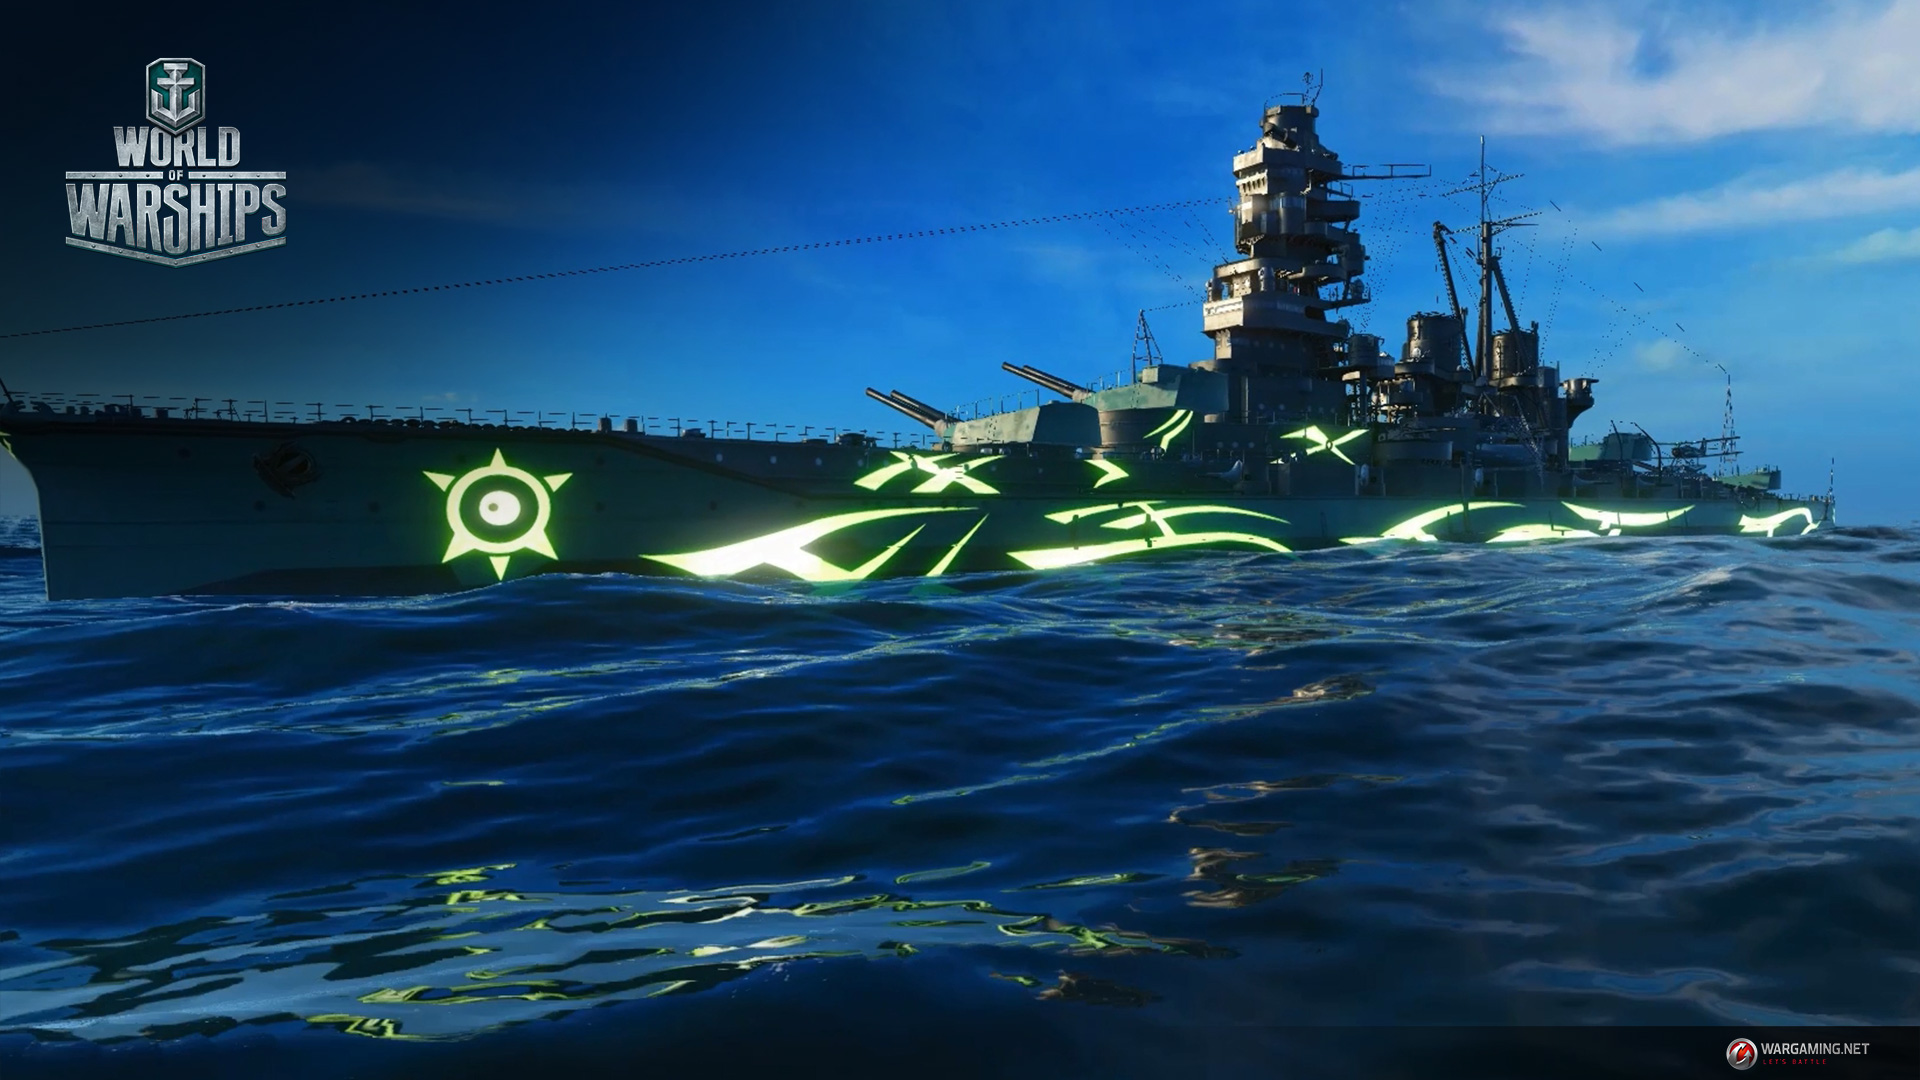 Ars Nova Apreggio Of Blue Steel Ars Nova Coming To World Of Warships